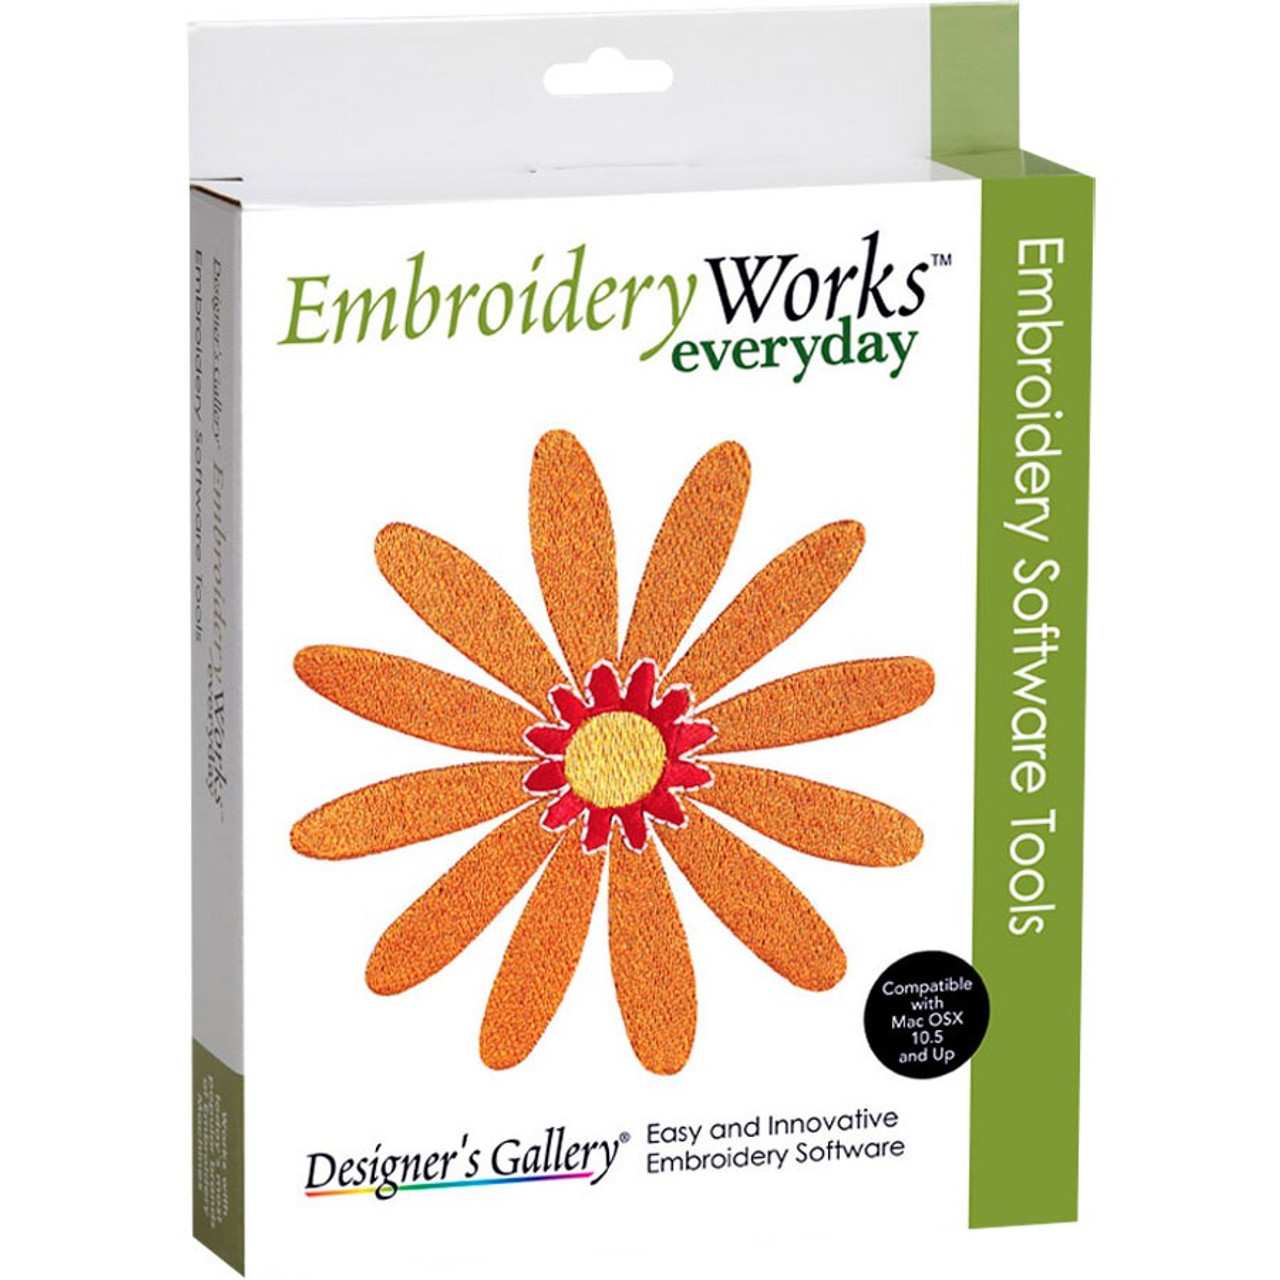 Embroideryworks everyday phil s sewing machine store